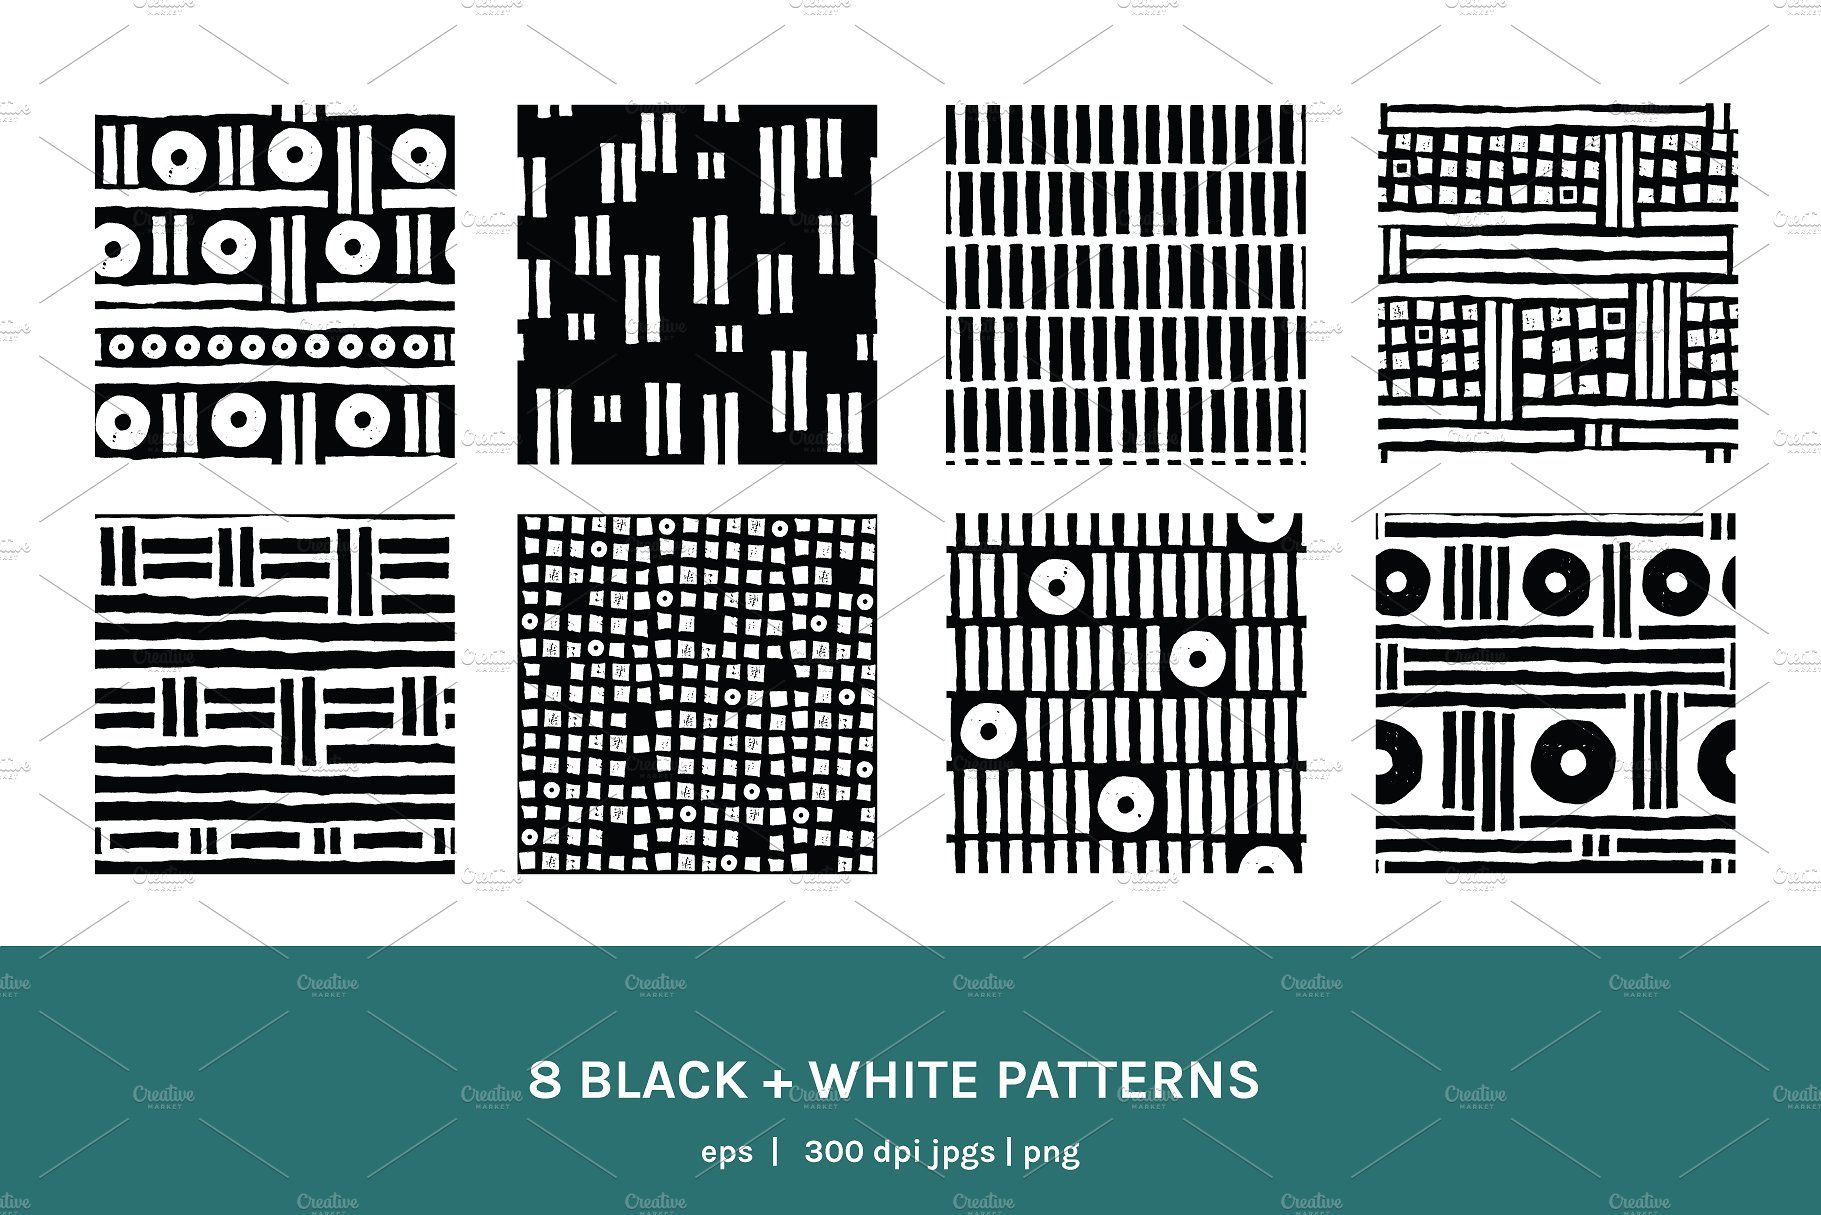 Creating Trendy Designs With Abstract Patterns In Illustrator